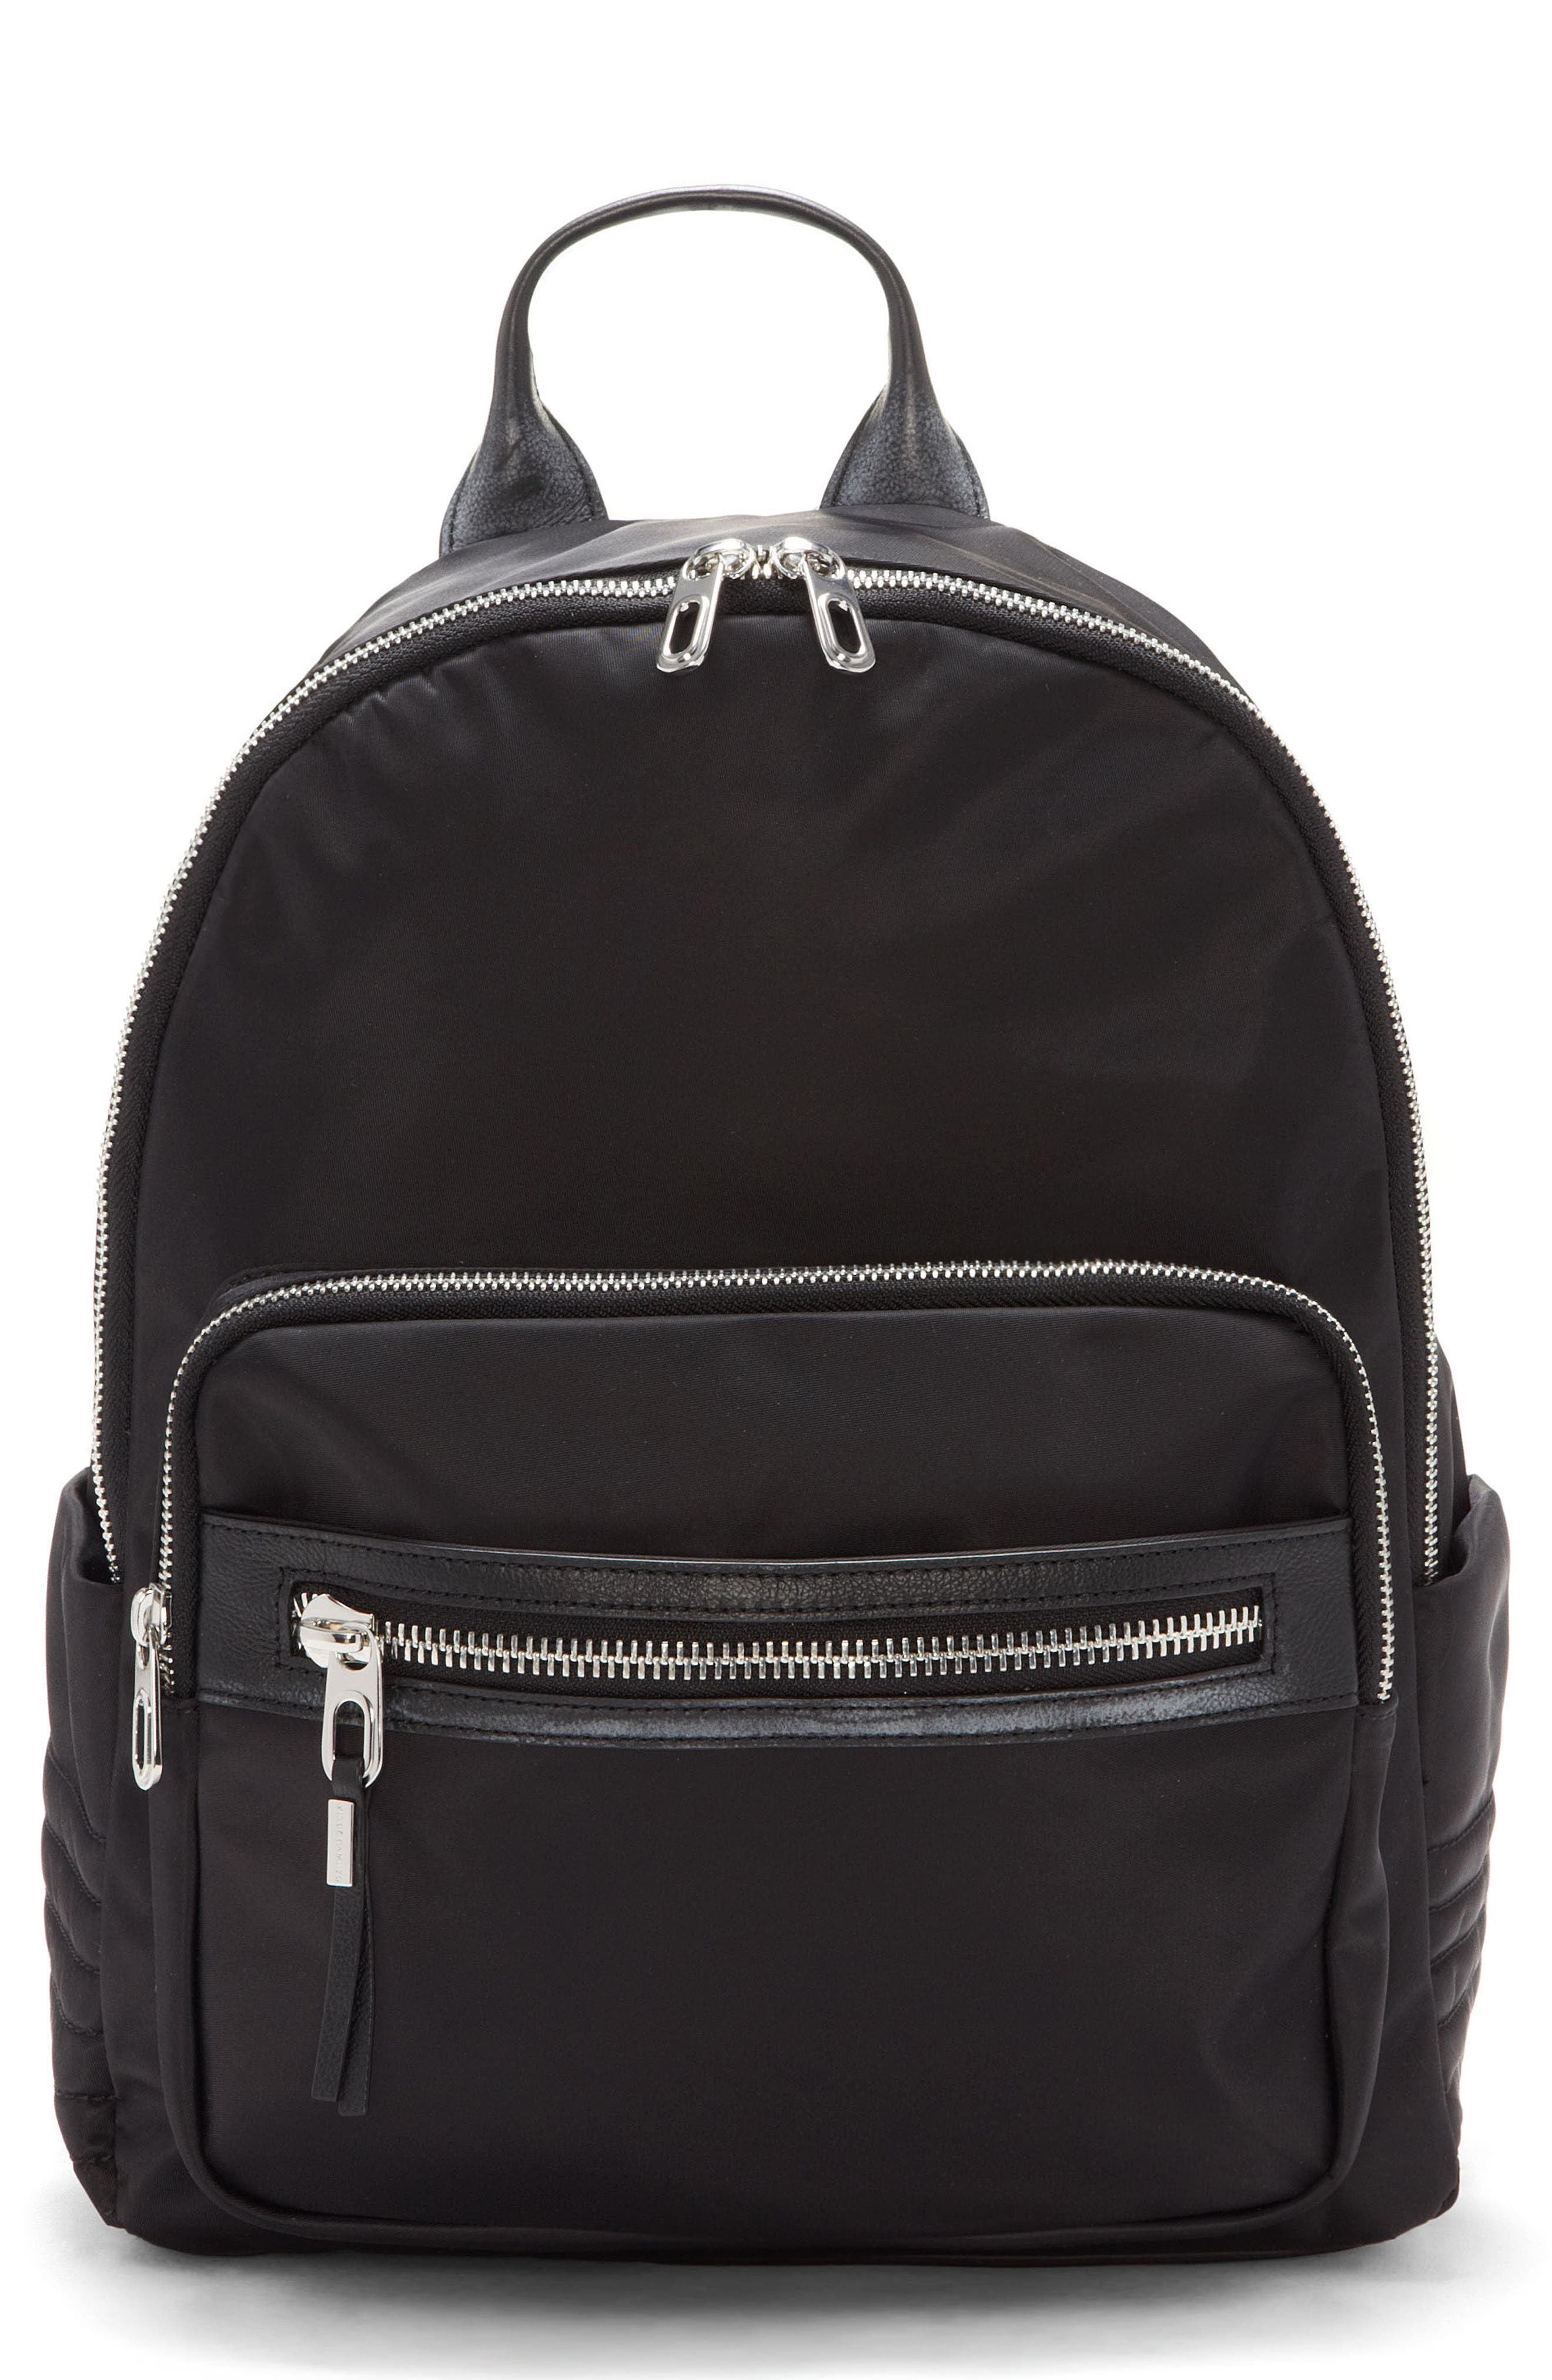 Action Nylon Backpack,                         Main,                         color, 001